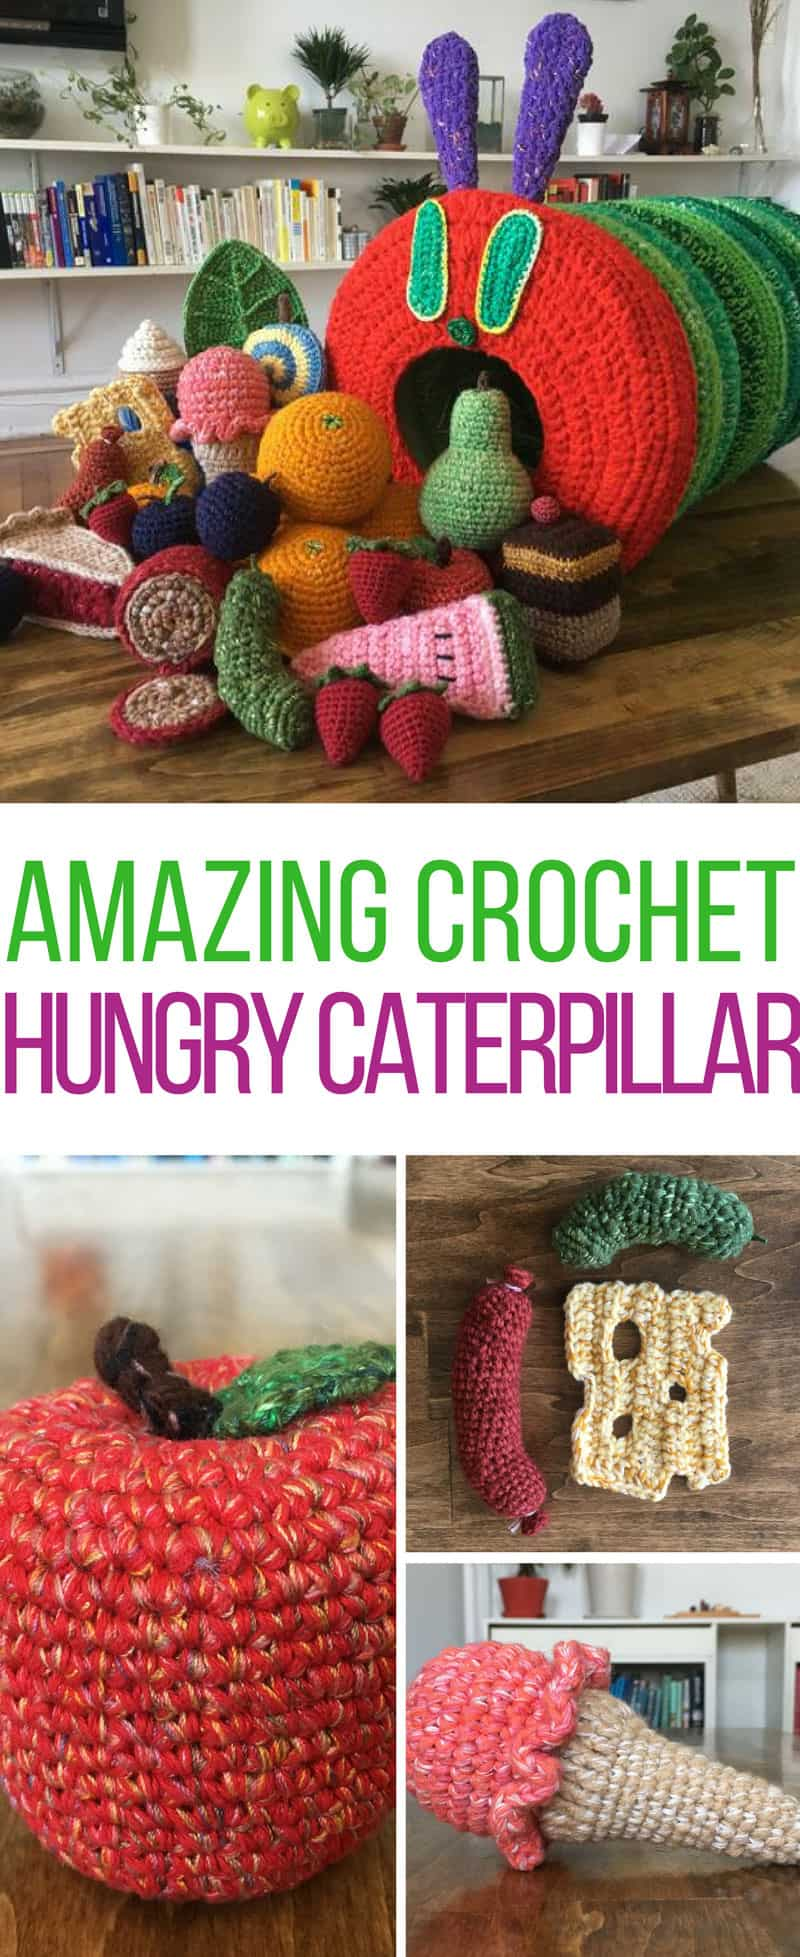 This Crochet Hungry Caterpillar Will Totally Blow Your Mind